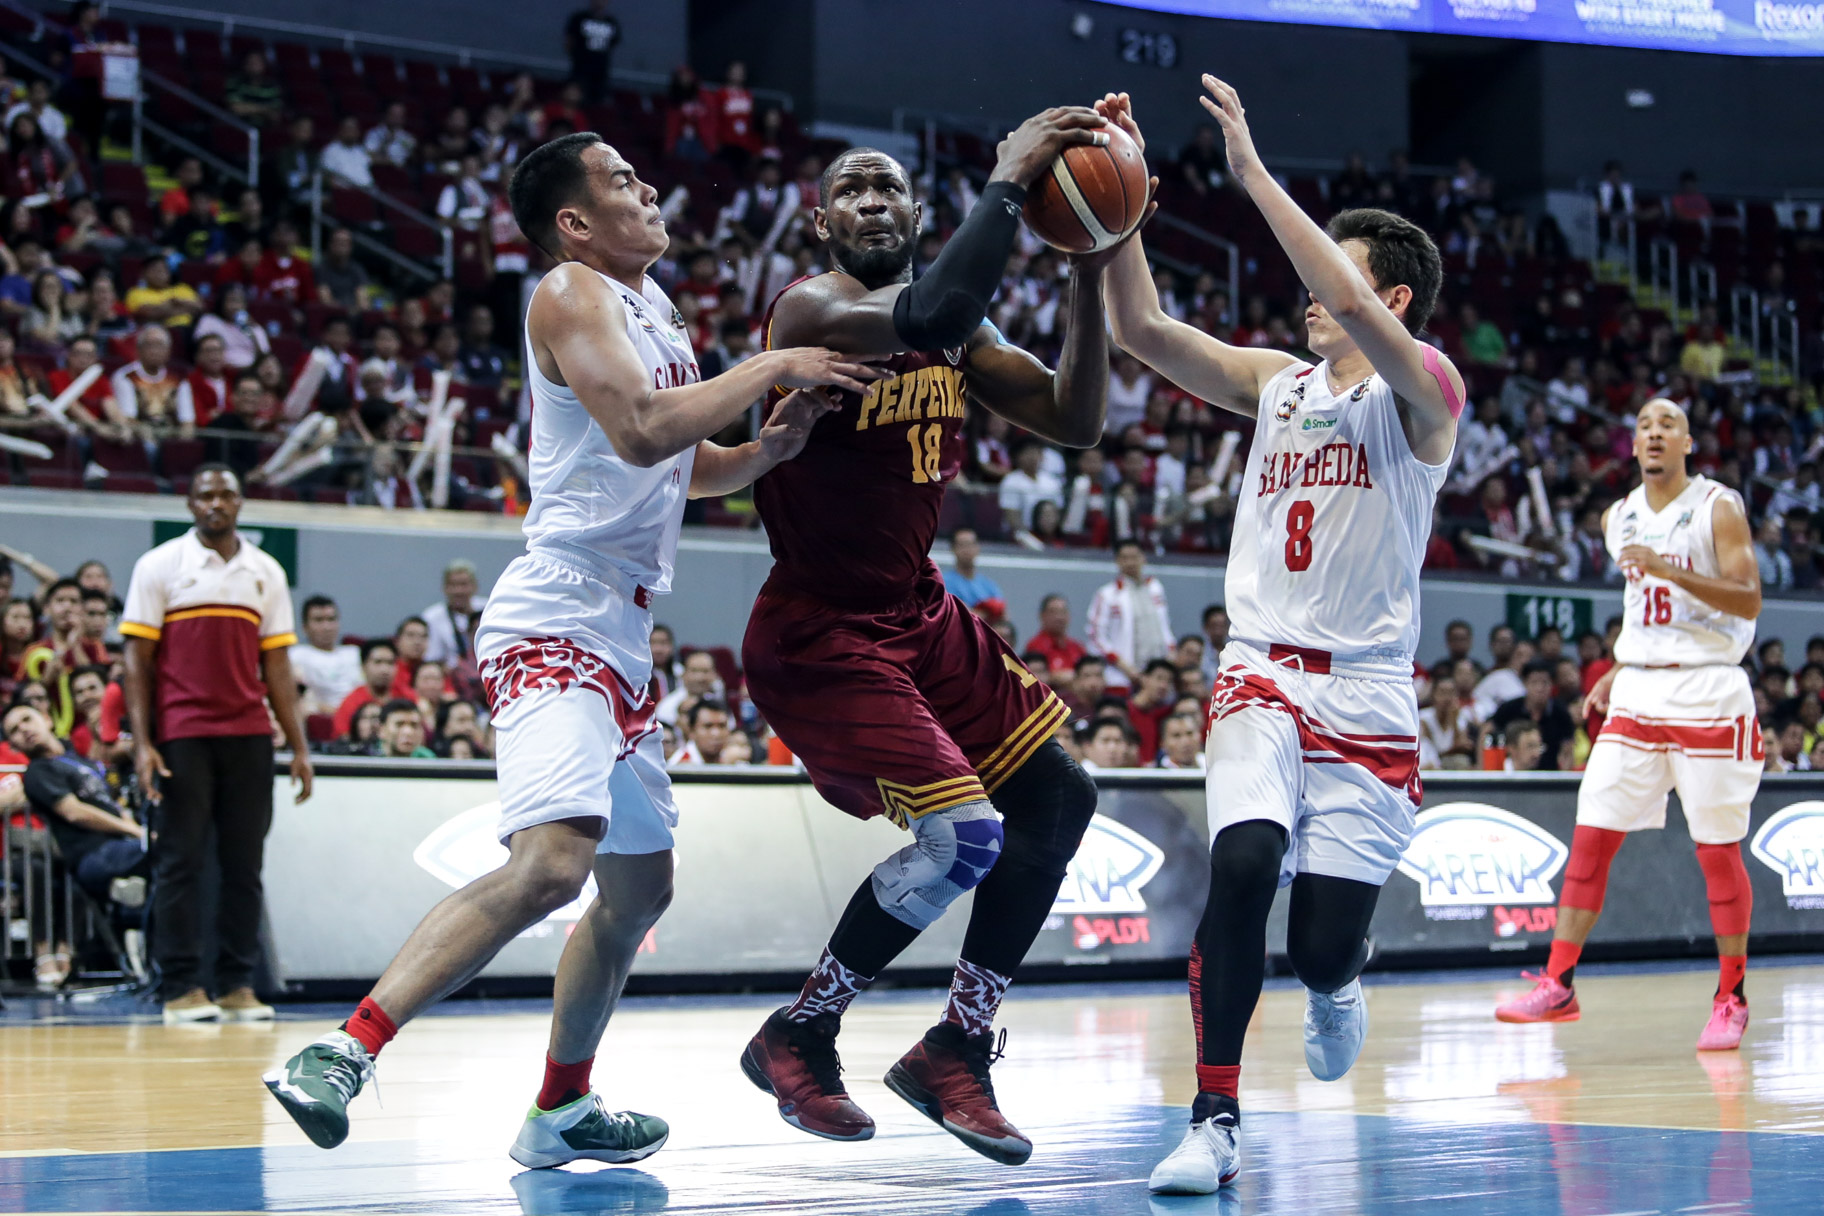 ncaa-uphsd-vs-sbc-september-30-2016-thomas-1